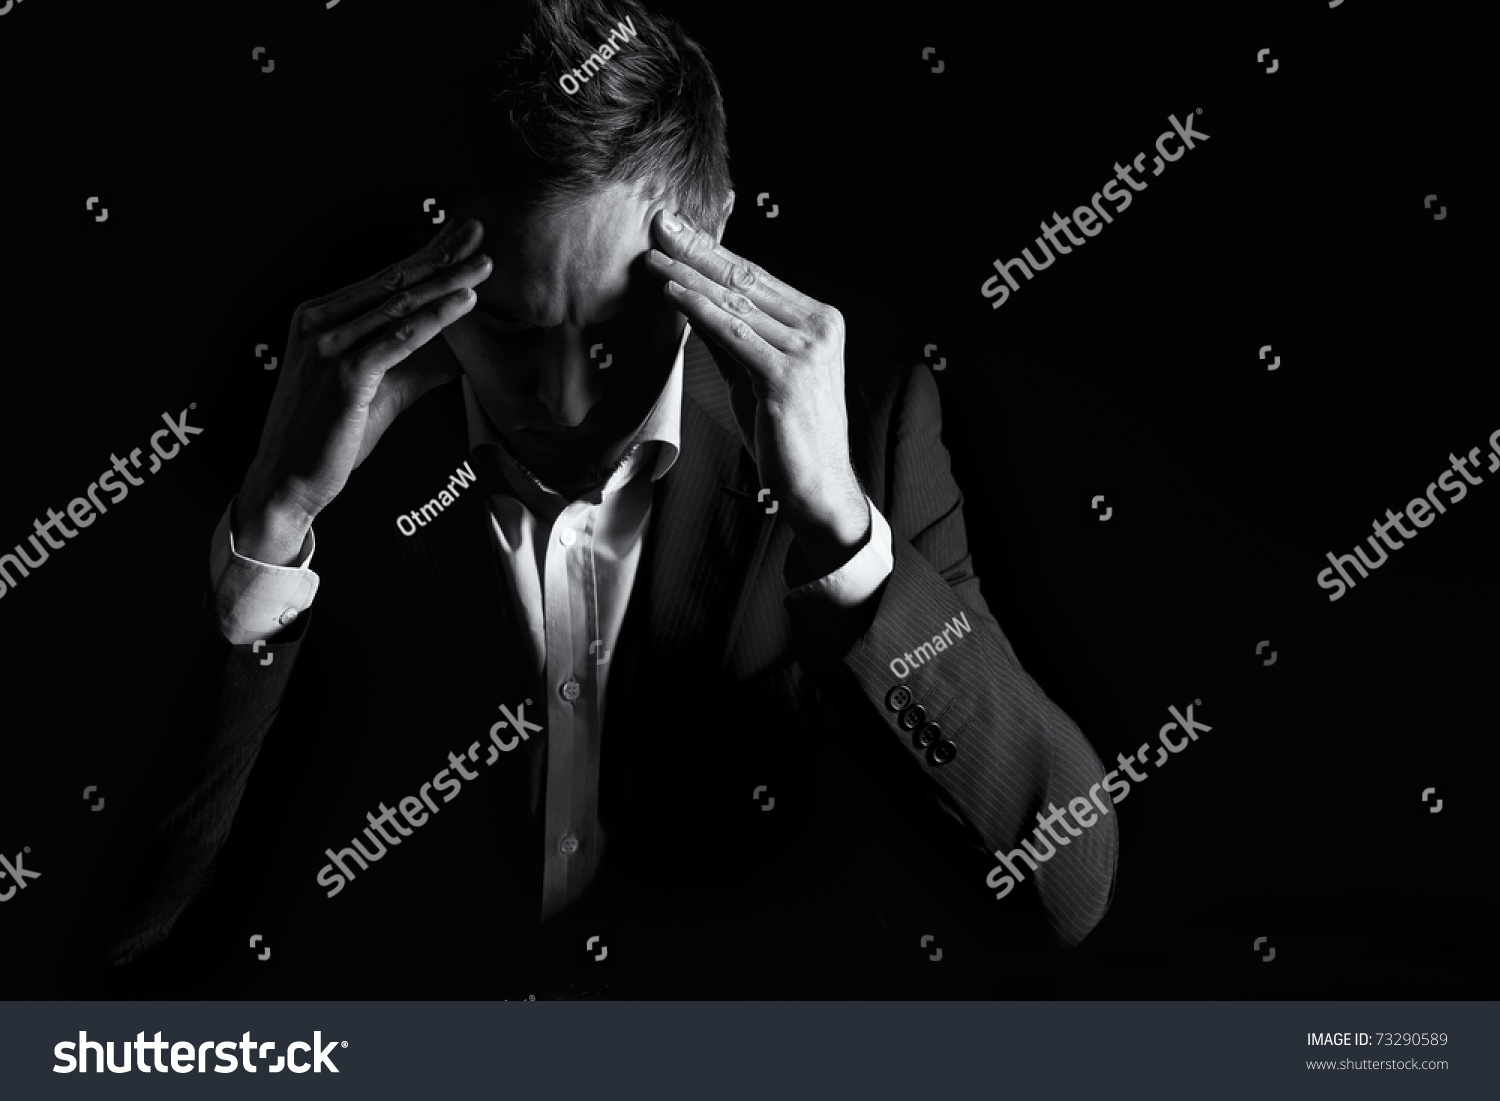 to the person sitting in darkness essay Heart of darkness reflection  sitting in the office are two women dressed almost  heart of darkness essay light and dark imagery is one element most.